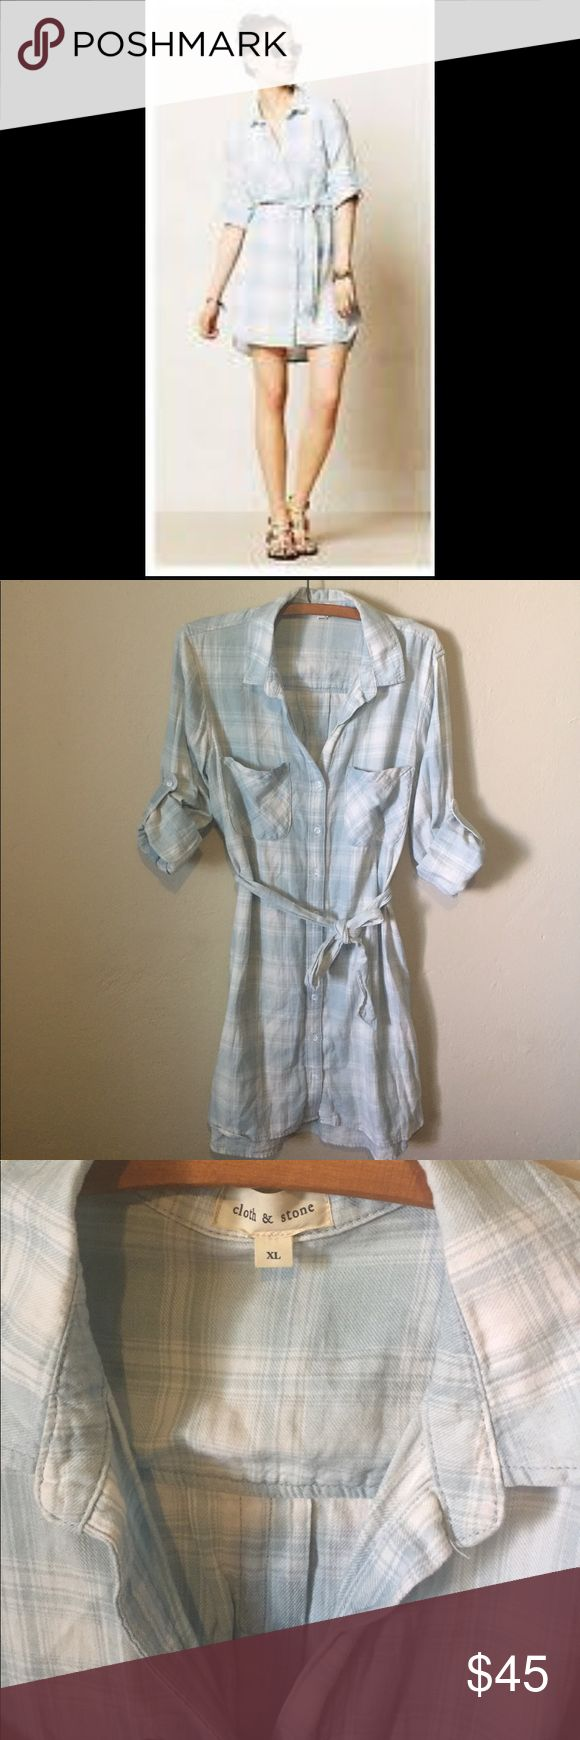 Anthropologie Cloth and Stone shirt dress Super cute flannel shirt dress with a blue and white plaid pattern, very comfortable. Great condition Anthropologie Dresses